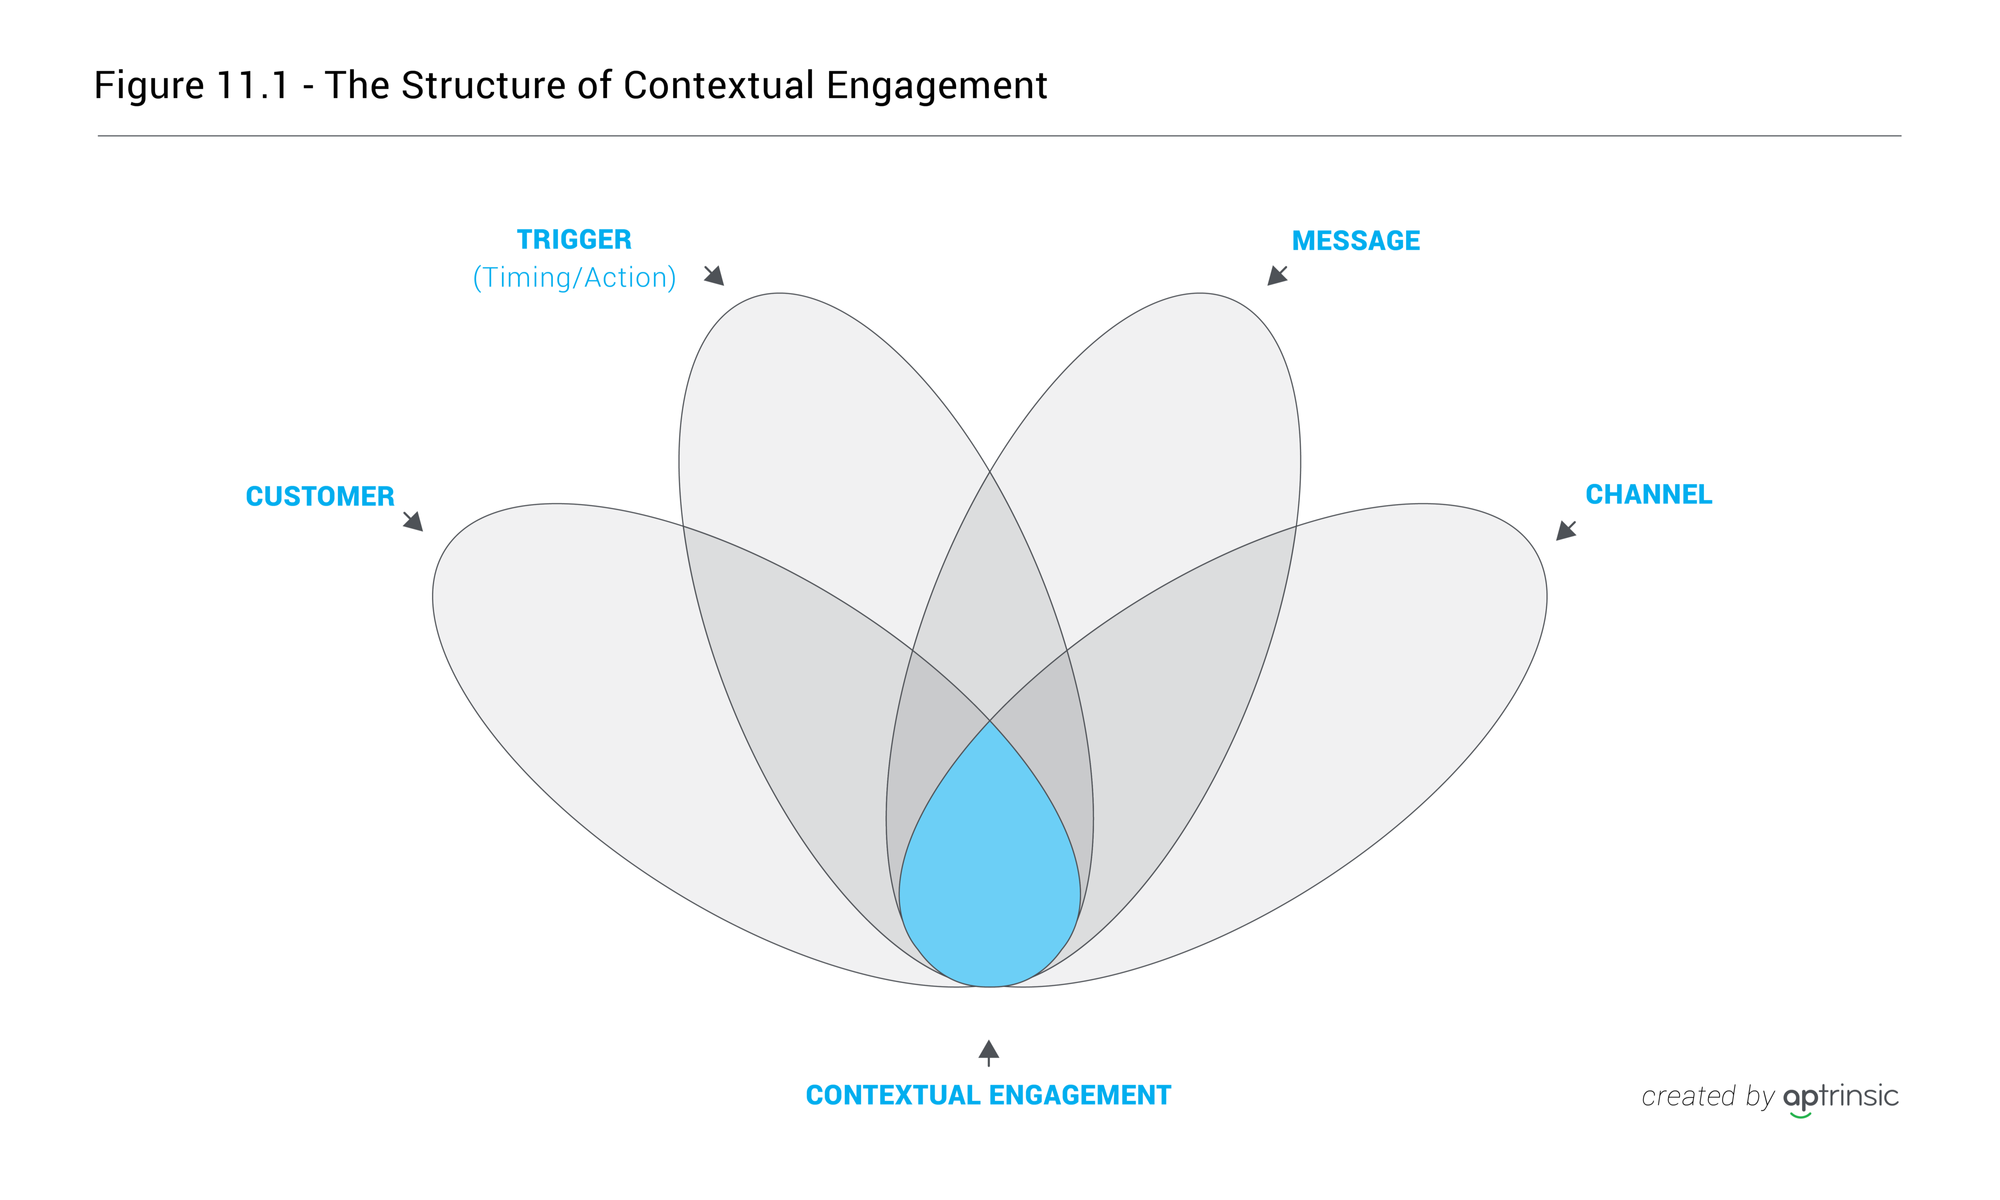 Chapter 11: The Anatomy of Personalized Customer Engagement